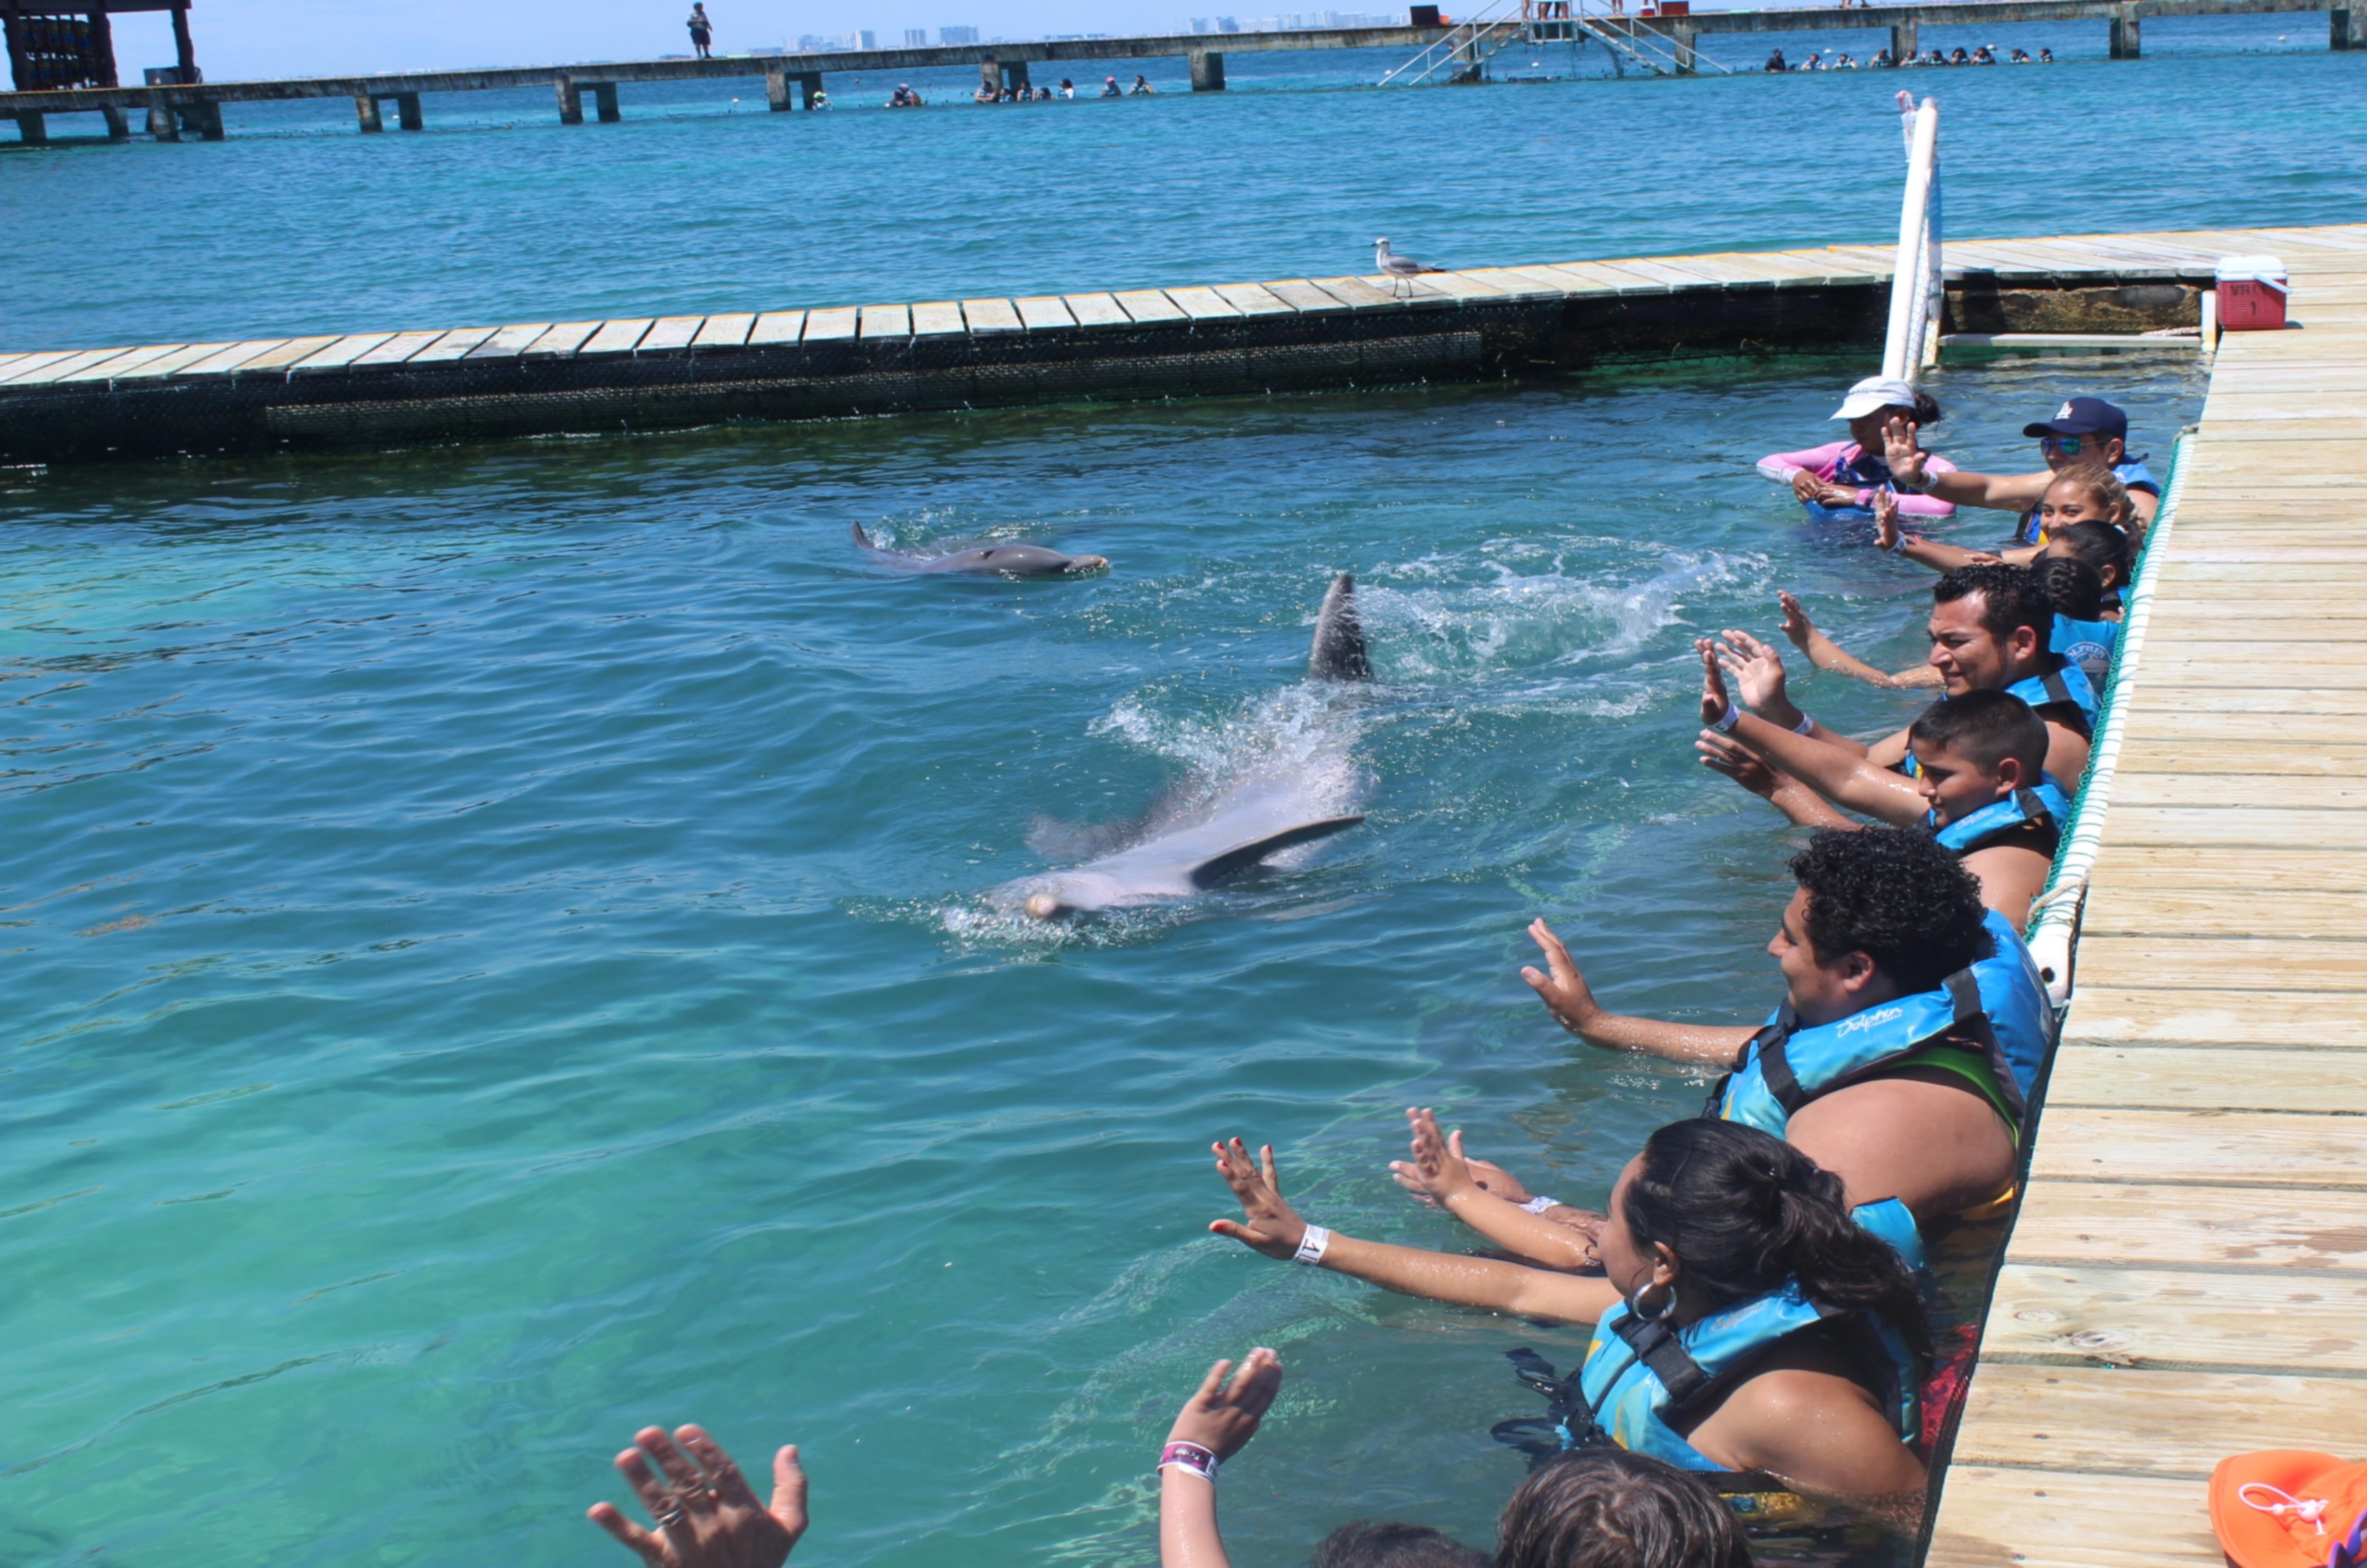 FUNDACIÓN DOLPHIN DISCOVERY SIGNED AN AGREEMENT WITH BENEFITED ASSOCIATIONS